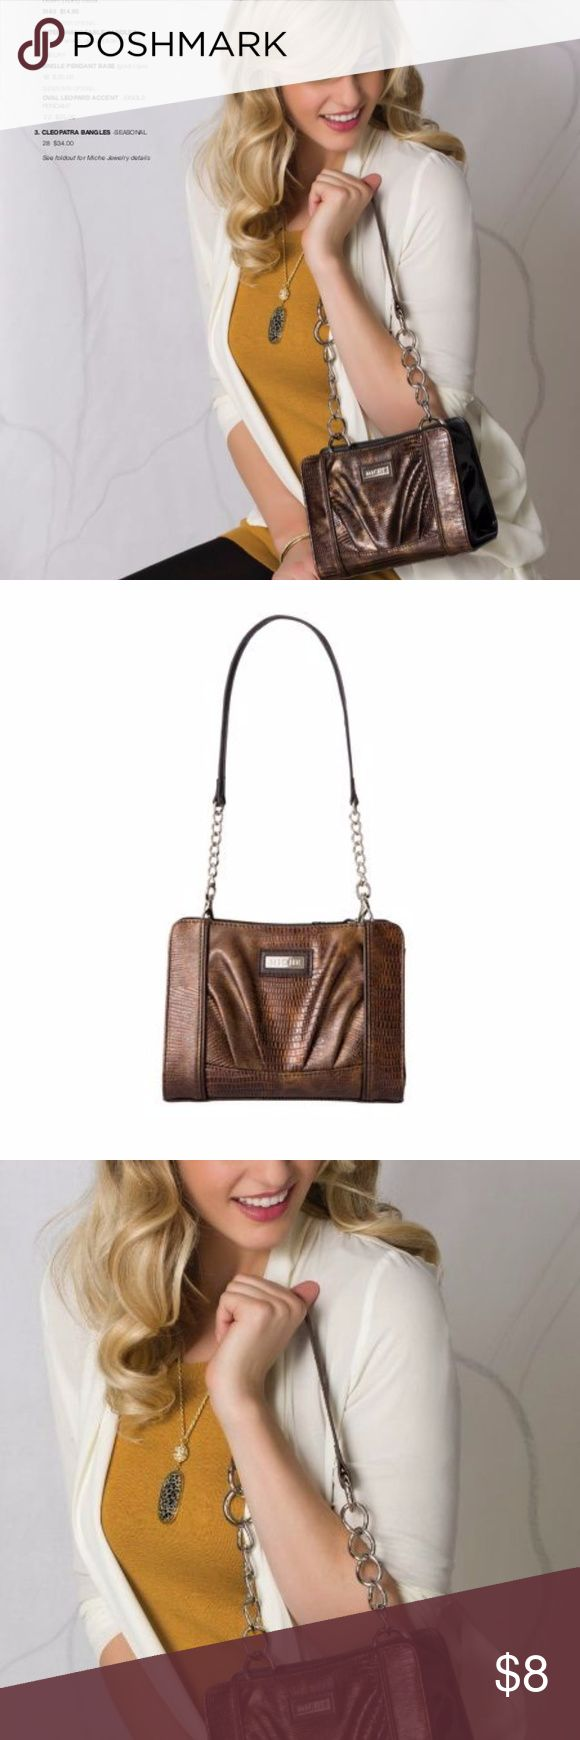 "Inga in Petite (Shell Only) Changing the look of a handbag is easy as 1-2-3 with Miche! Choose base size, choose the shell that suits your look or mood, choose to use the standard handles that come with the base or switch it up with different interchangeable handles, and enjoy a new look every day! Inga is a high gloss faux leather lizard print in bronze featuring front pleats and dark brown piping detail. Petite Base needed to complete look 6X8X4 Standard single handle -11.5"" handle drop…"